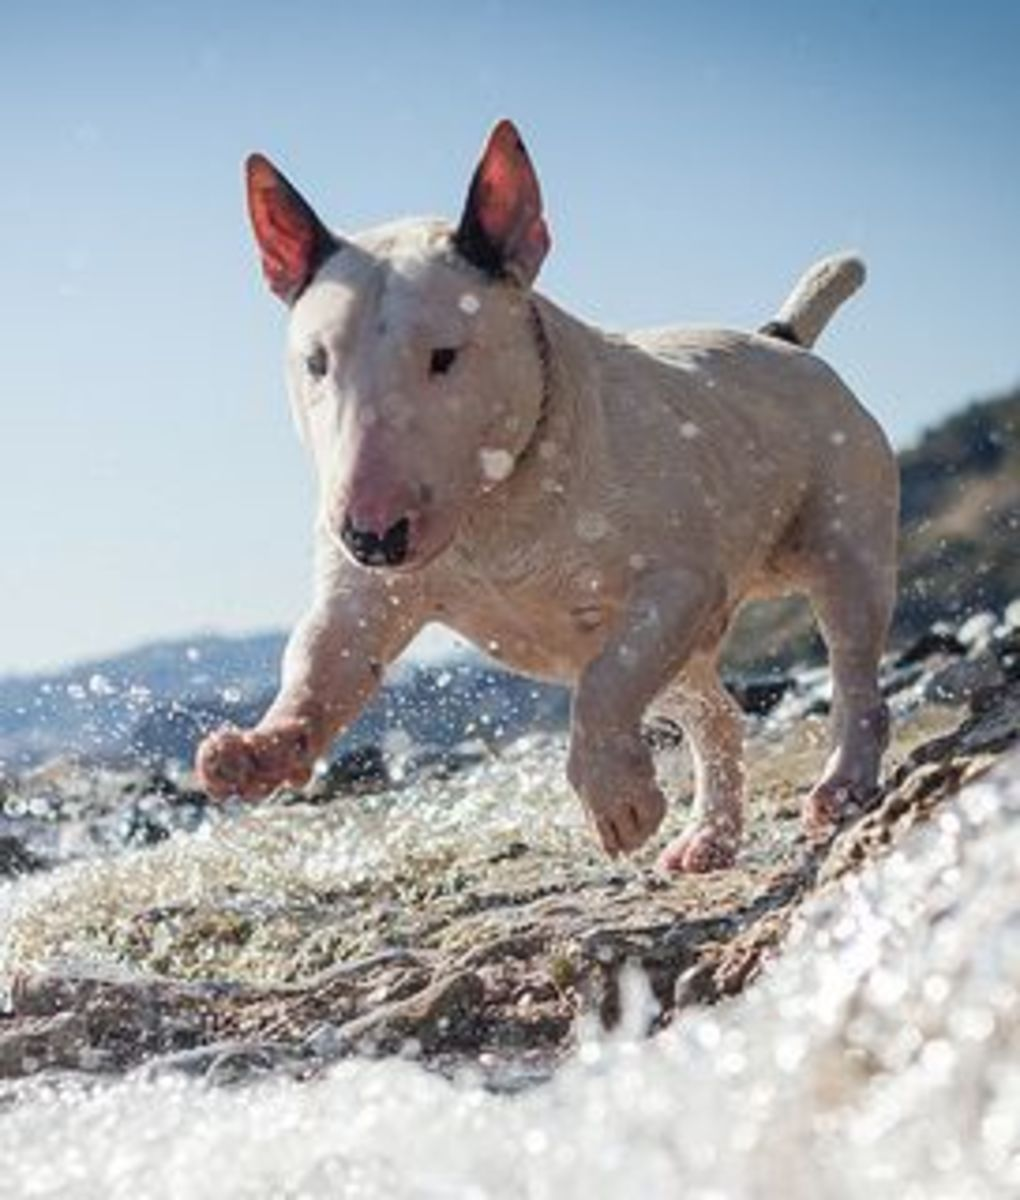 The Bull Terrier is one of the smallest of the large dogs that do not bark much.